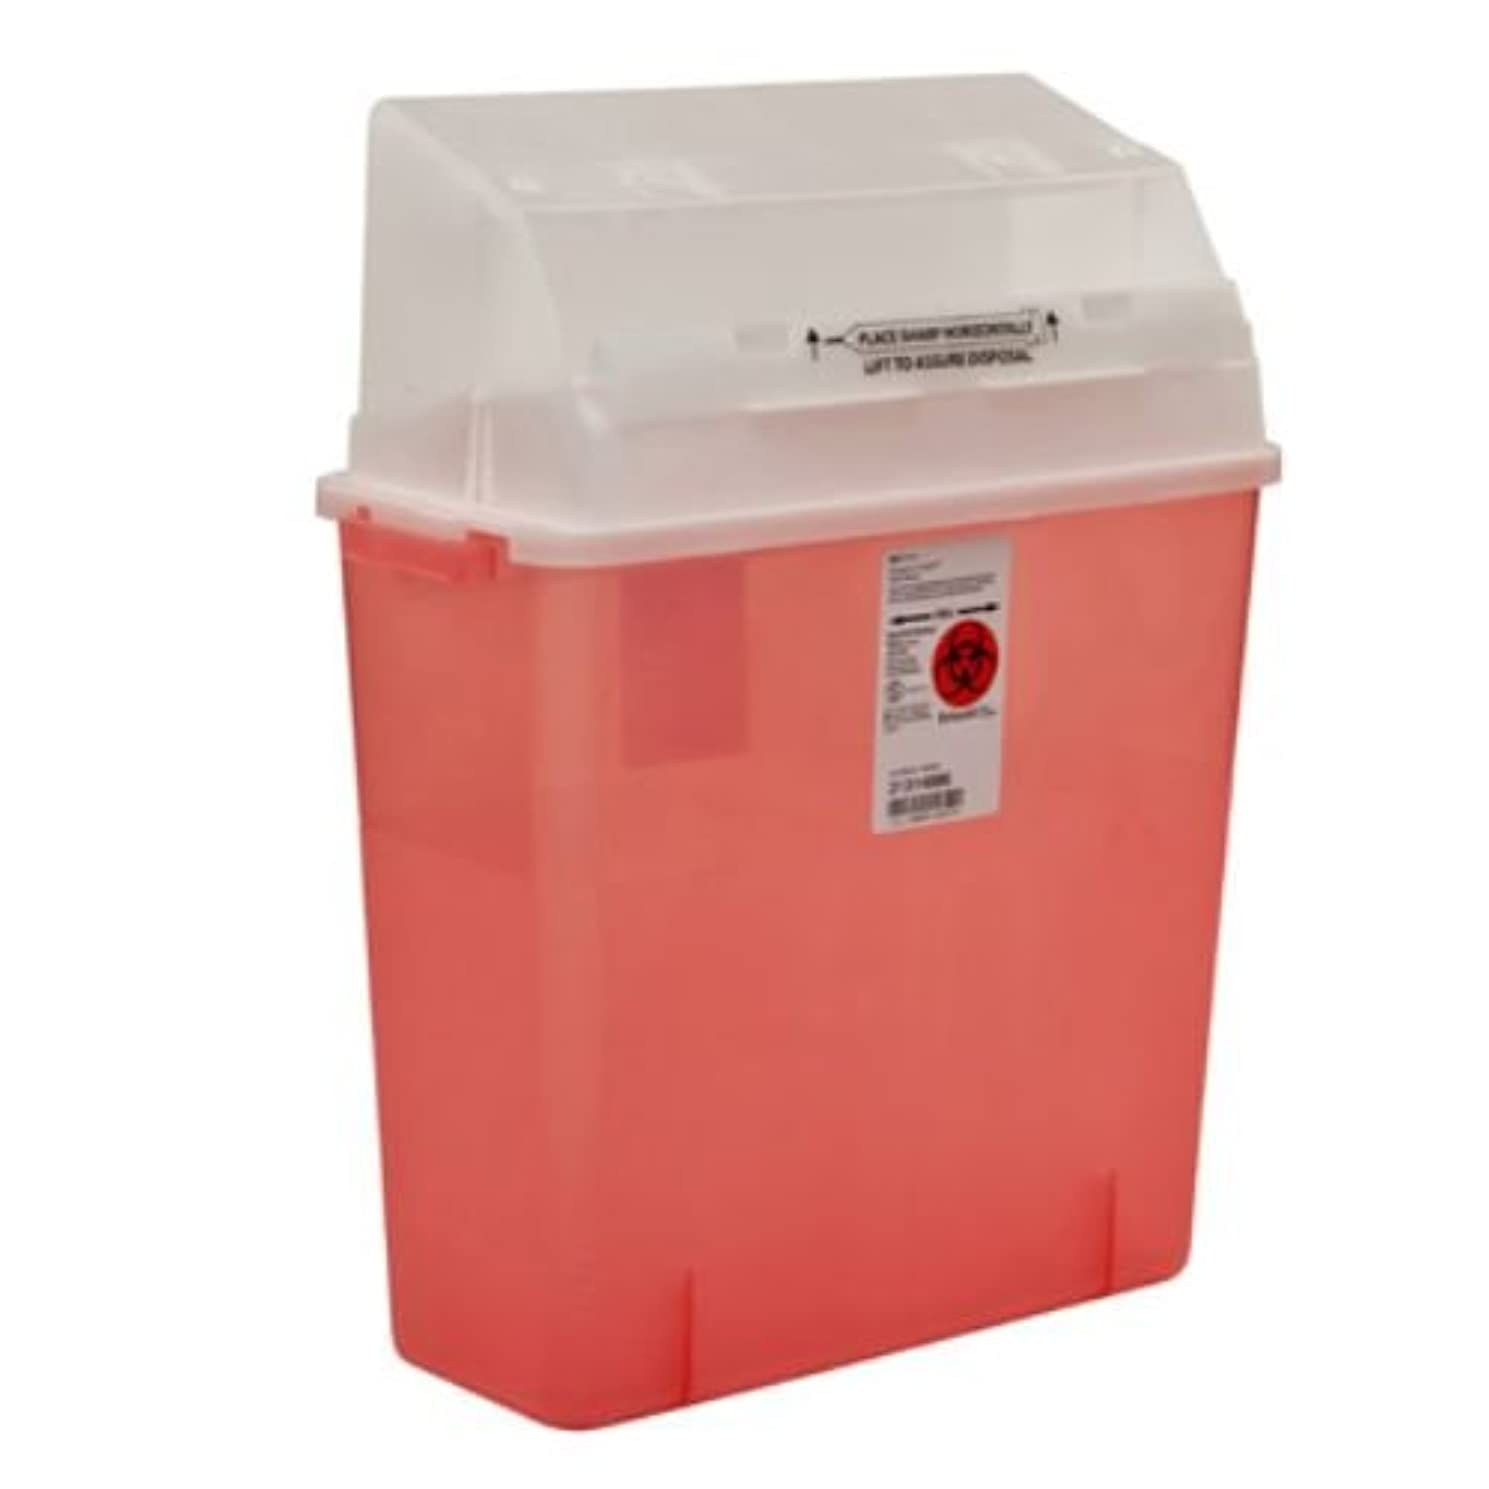 Covidien 31314886 Sharps-A-Gator Safety in Room Sharps Container with Counterbalance Lid, 3 gal Capacity, Transparent Red (Pack of 12)